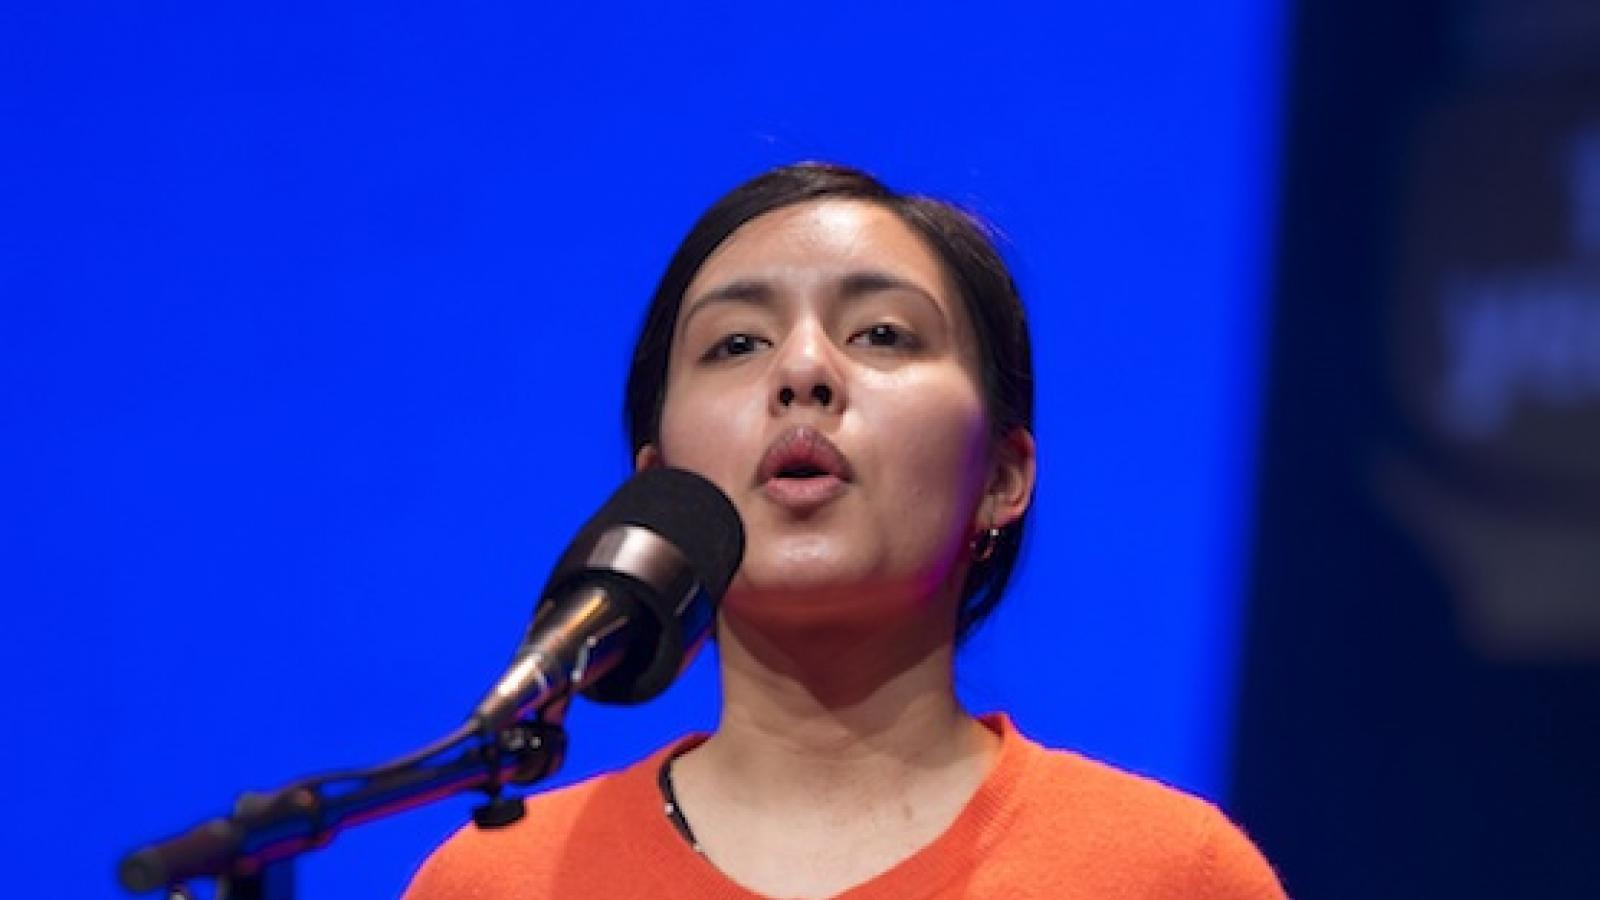 a young Hispanic woman wearing an unbuttoned orange sweater over a black dress with white polka dots recites into a microphone